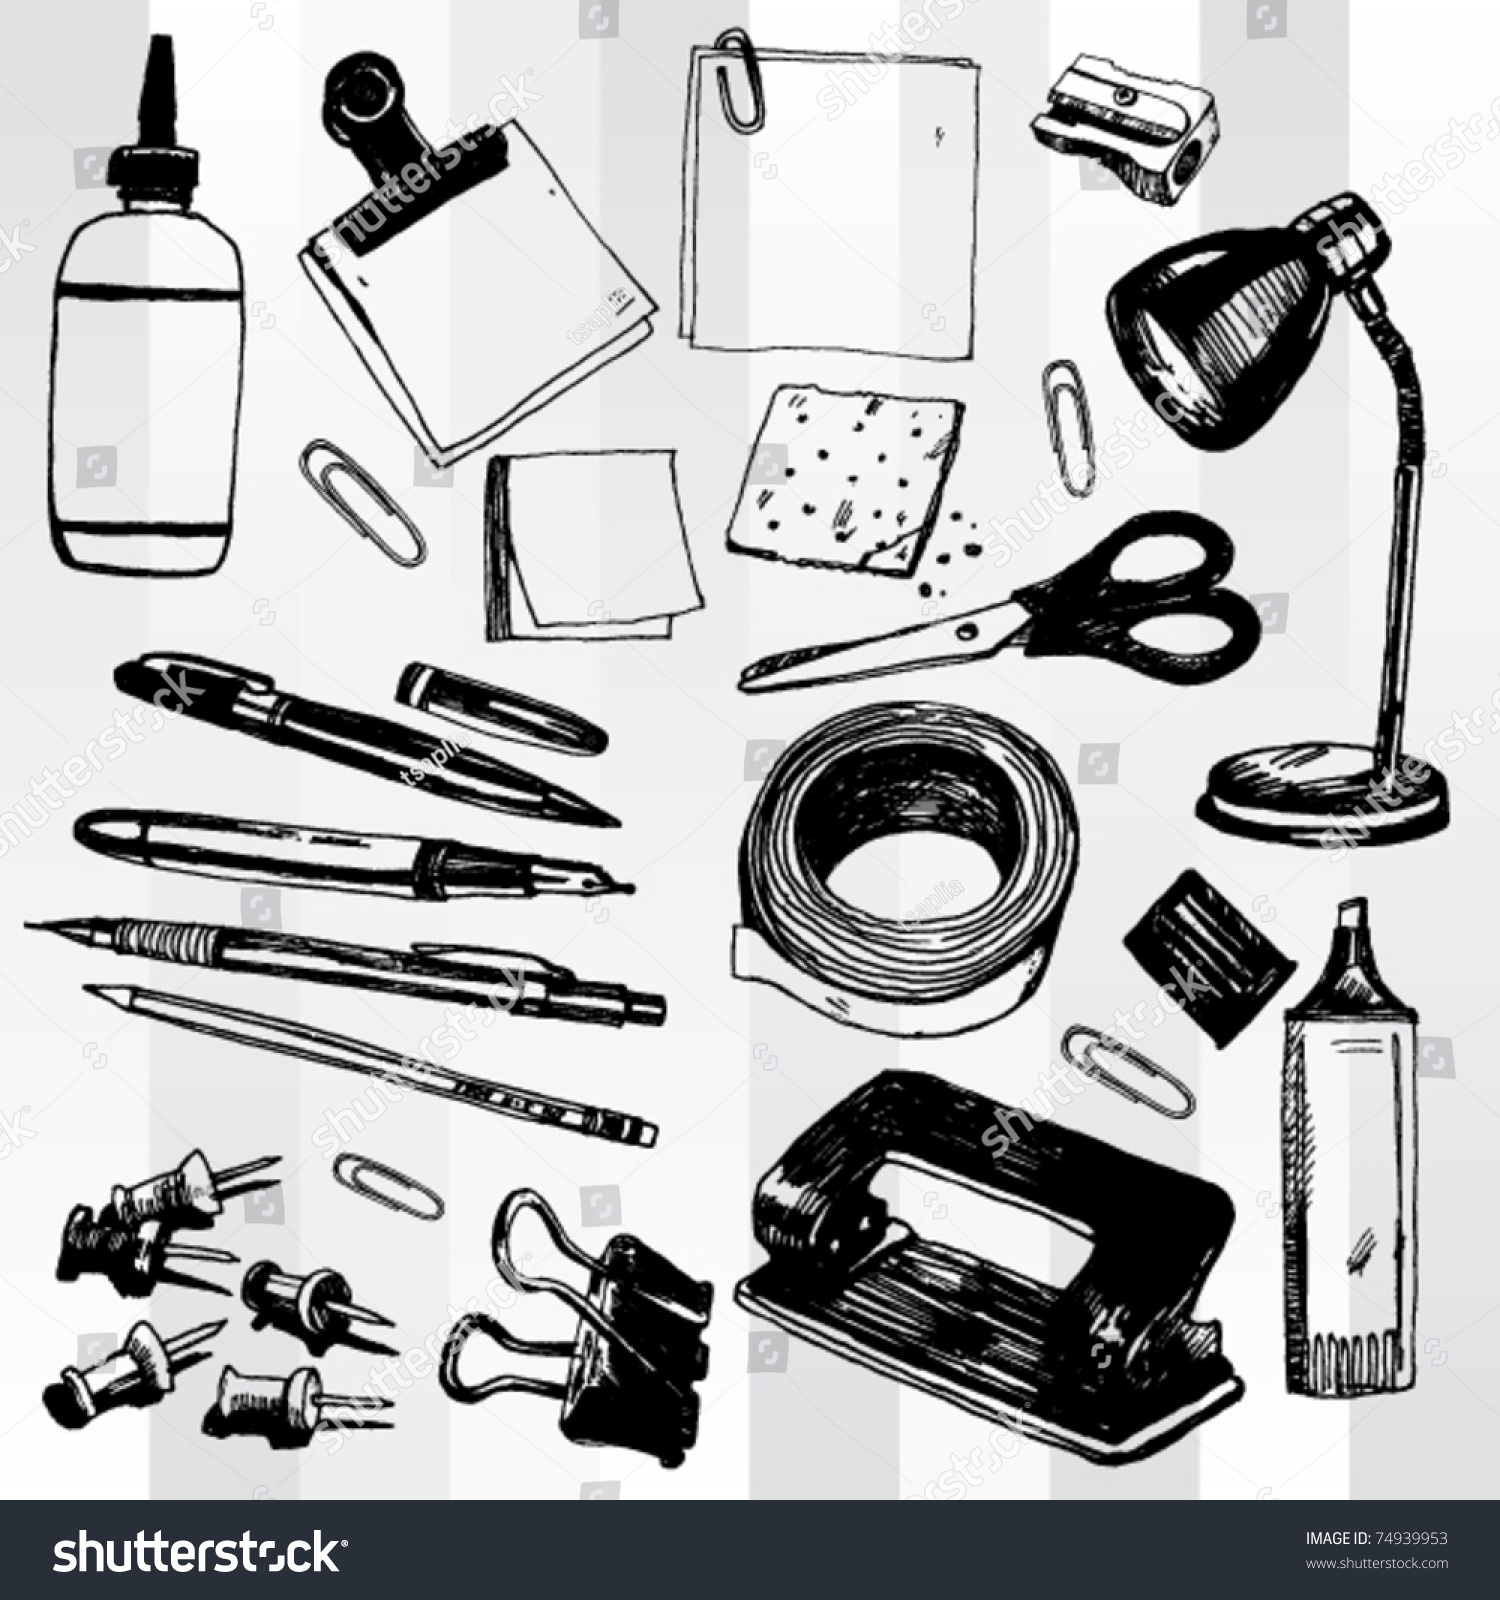 Some Office Stuff Hand Drawn Stock Vector 74939953 - Shutterstock